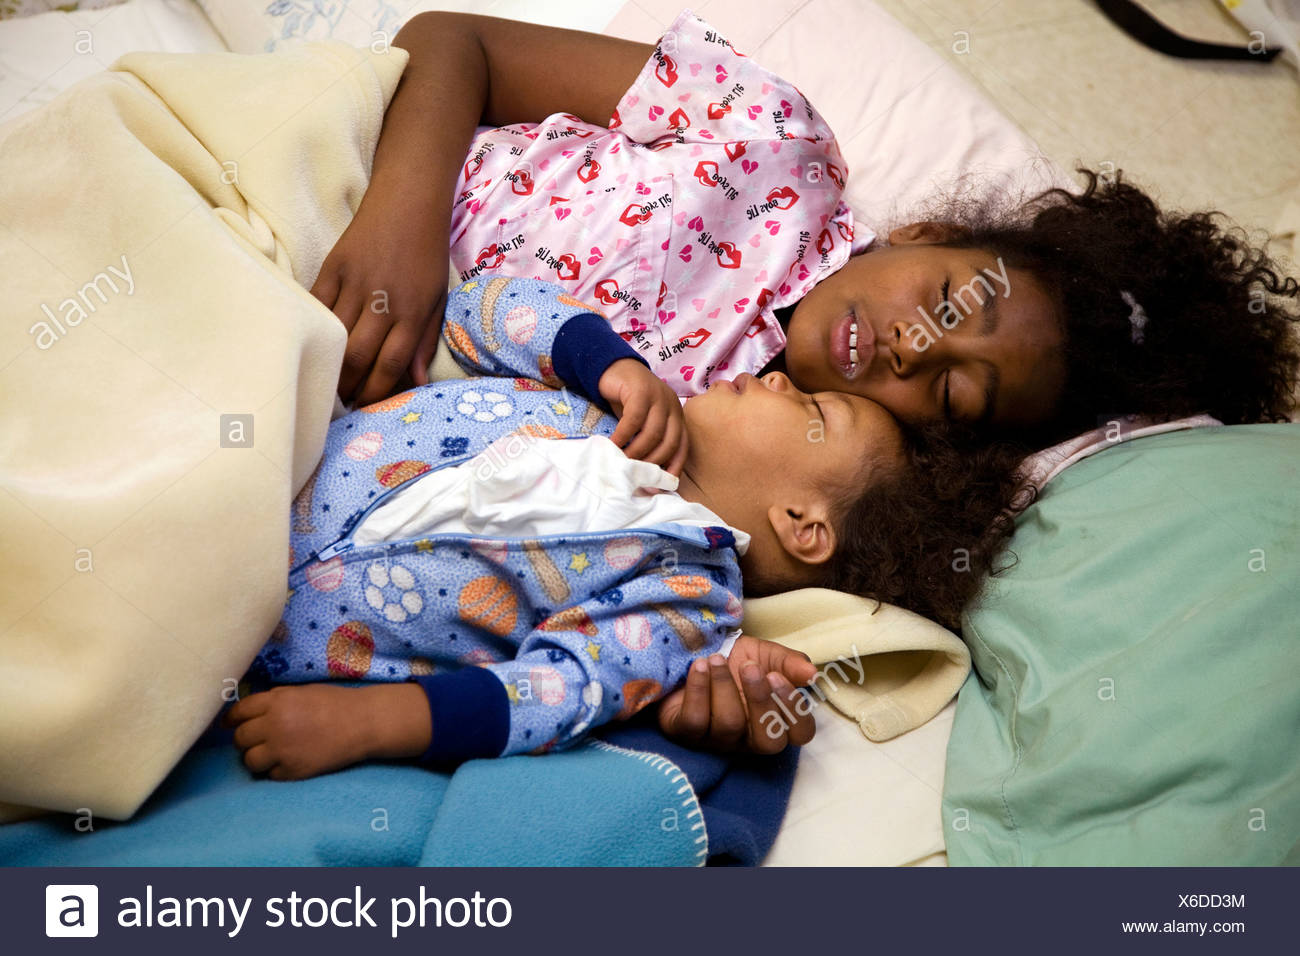 Selena Pina, a homeless mother of four, starts her day at 6am by coaxing her children to get up and ready for the day at United Stock Photo